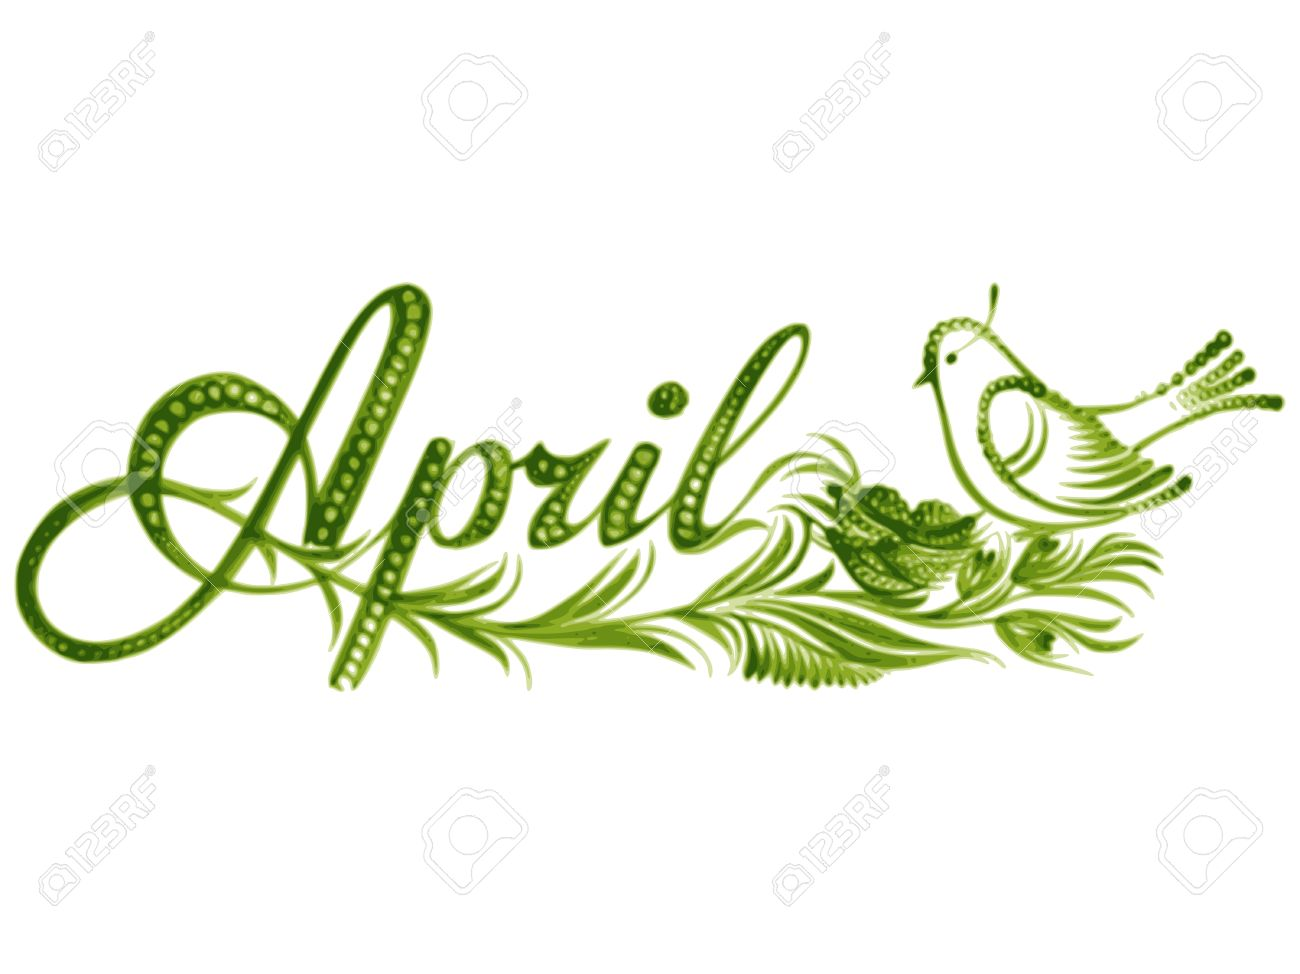 april name of the month hand drawn vector illustration in